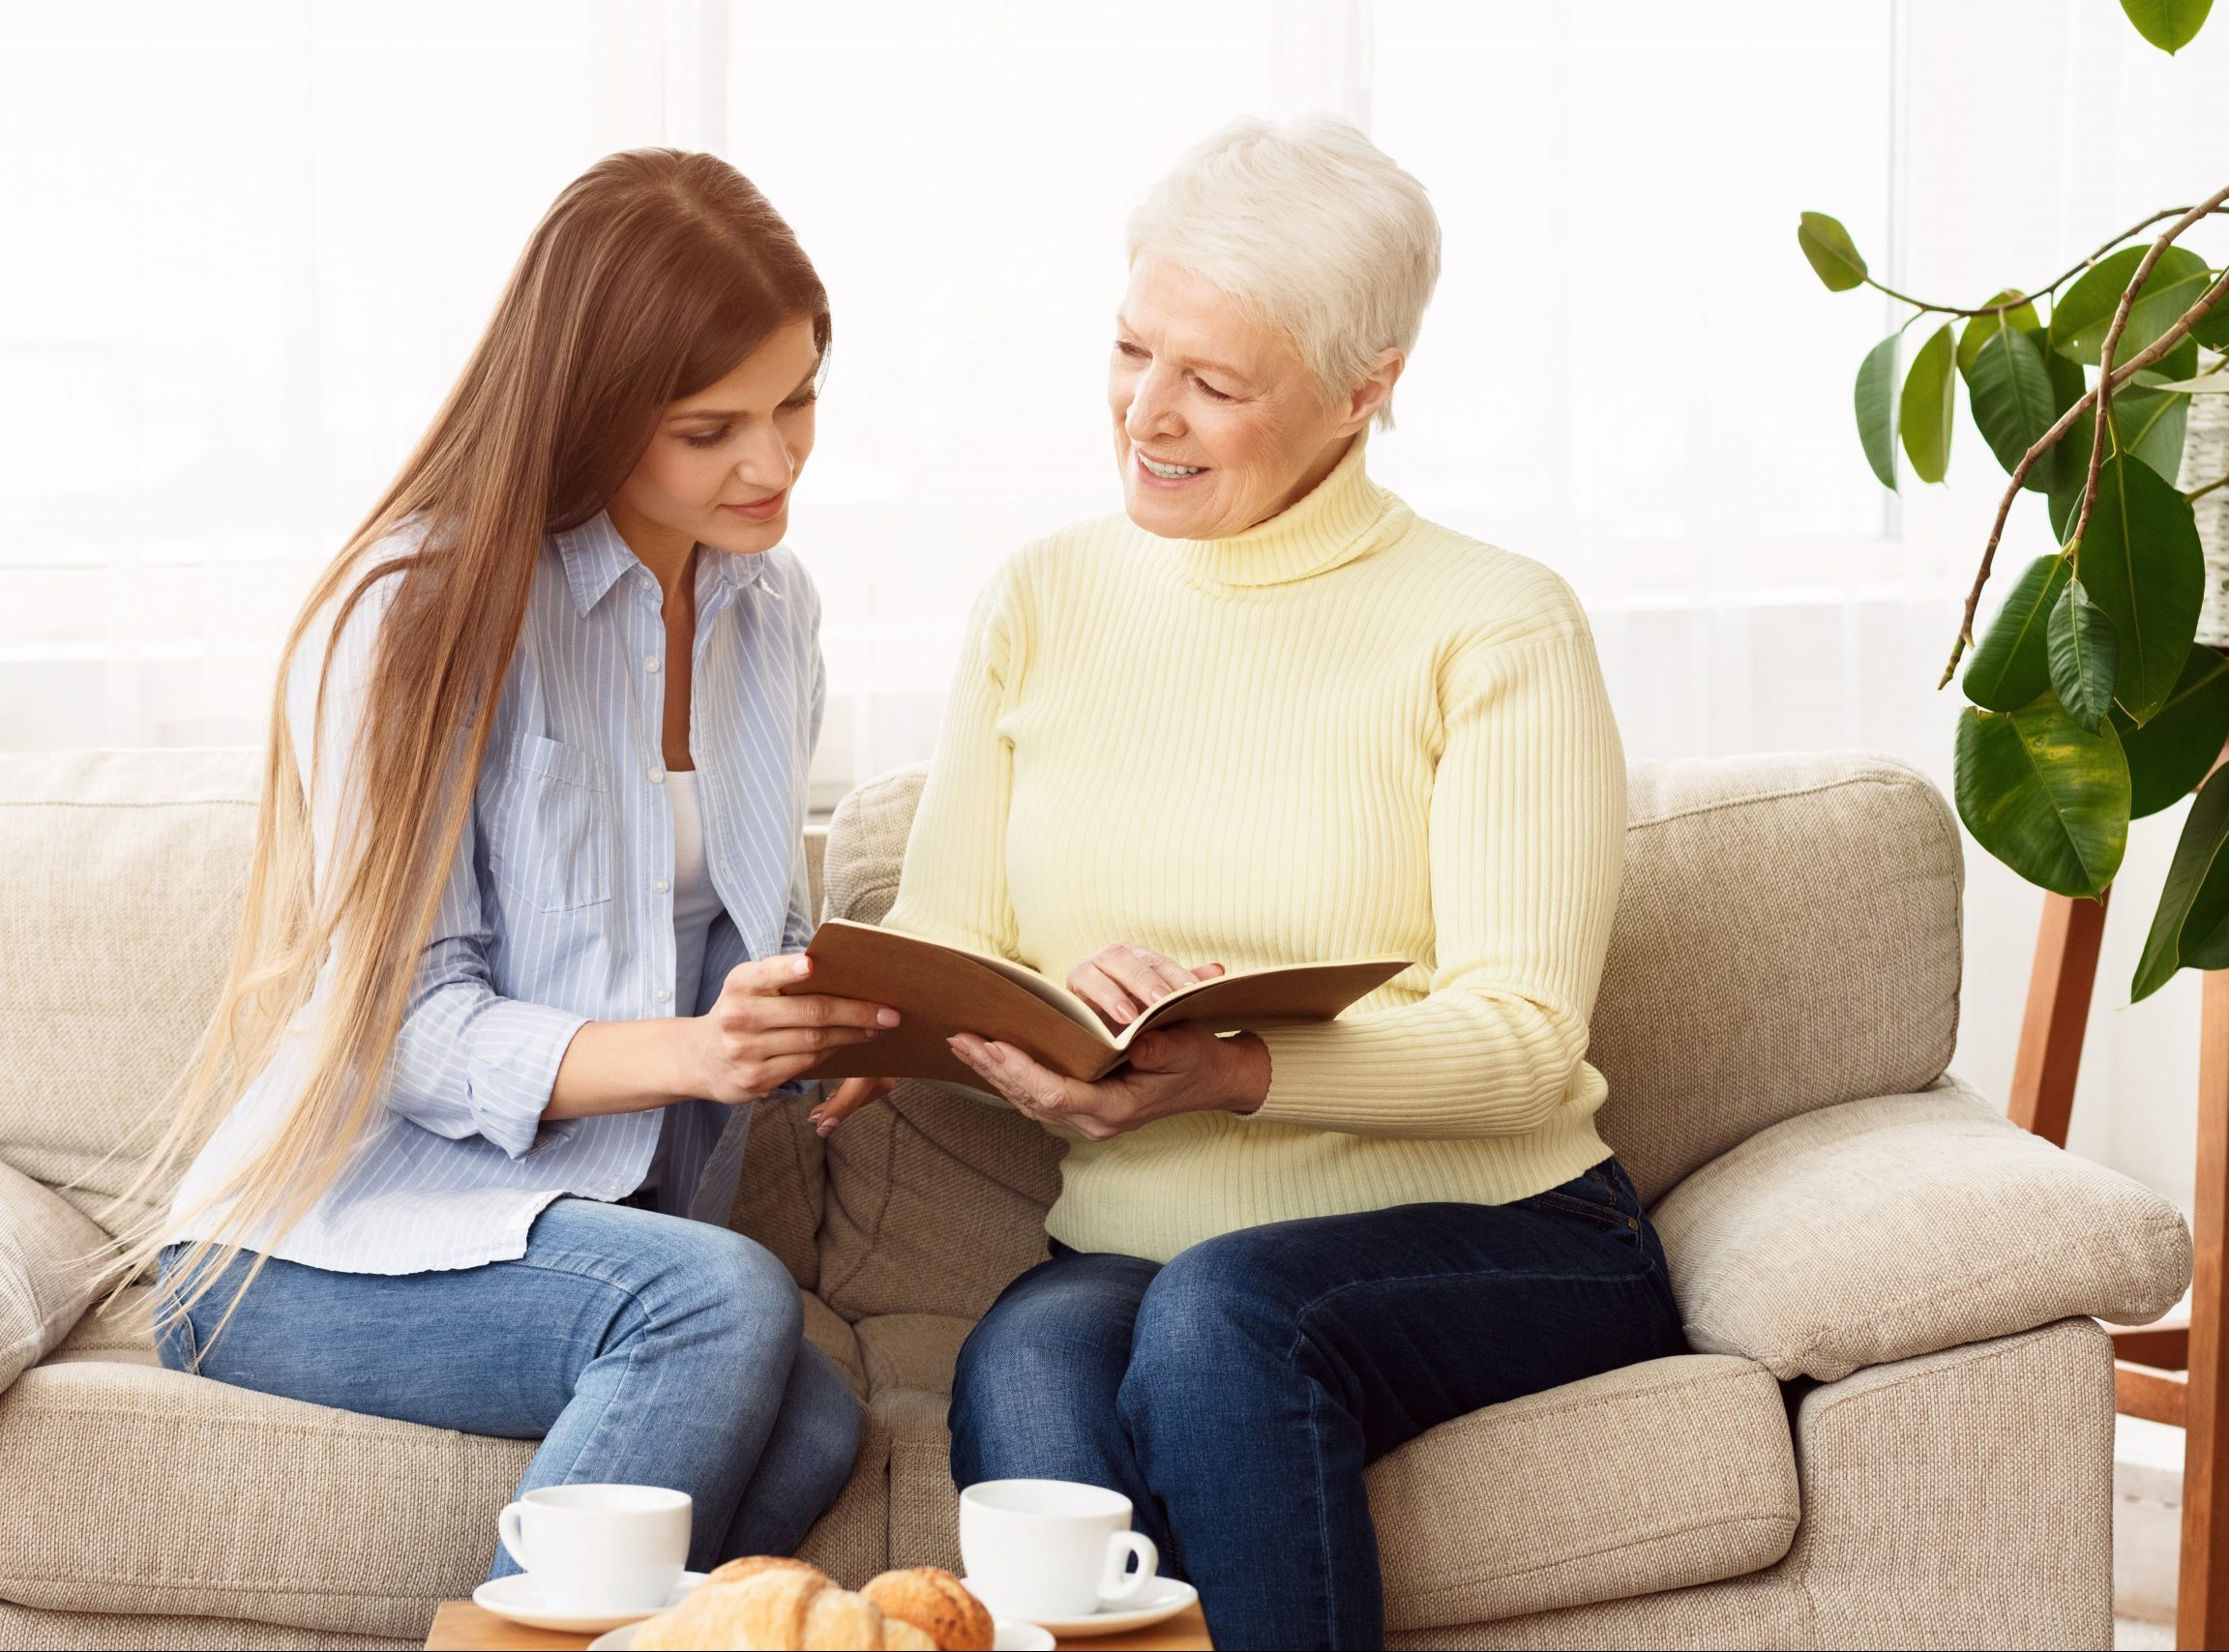 elderly-woman-looking-family-album-with-her-daught-TF6LBGQ-min